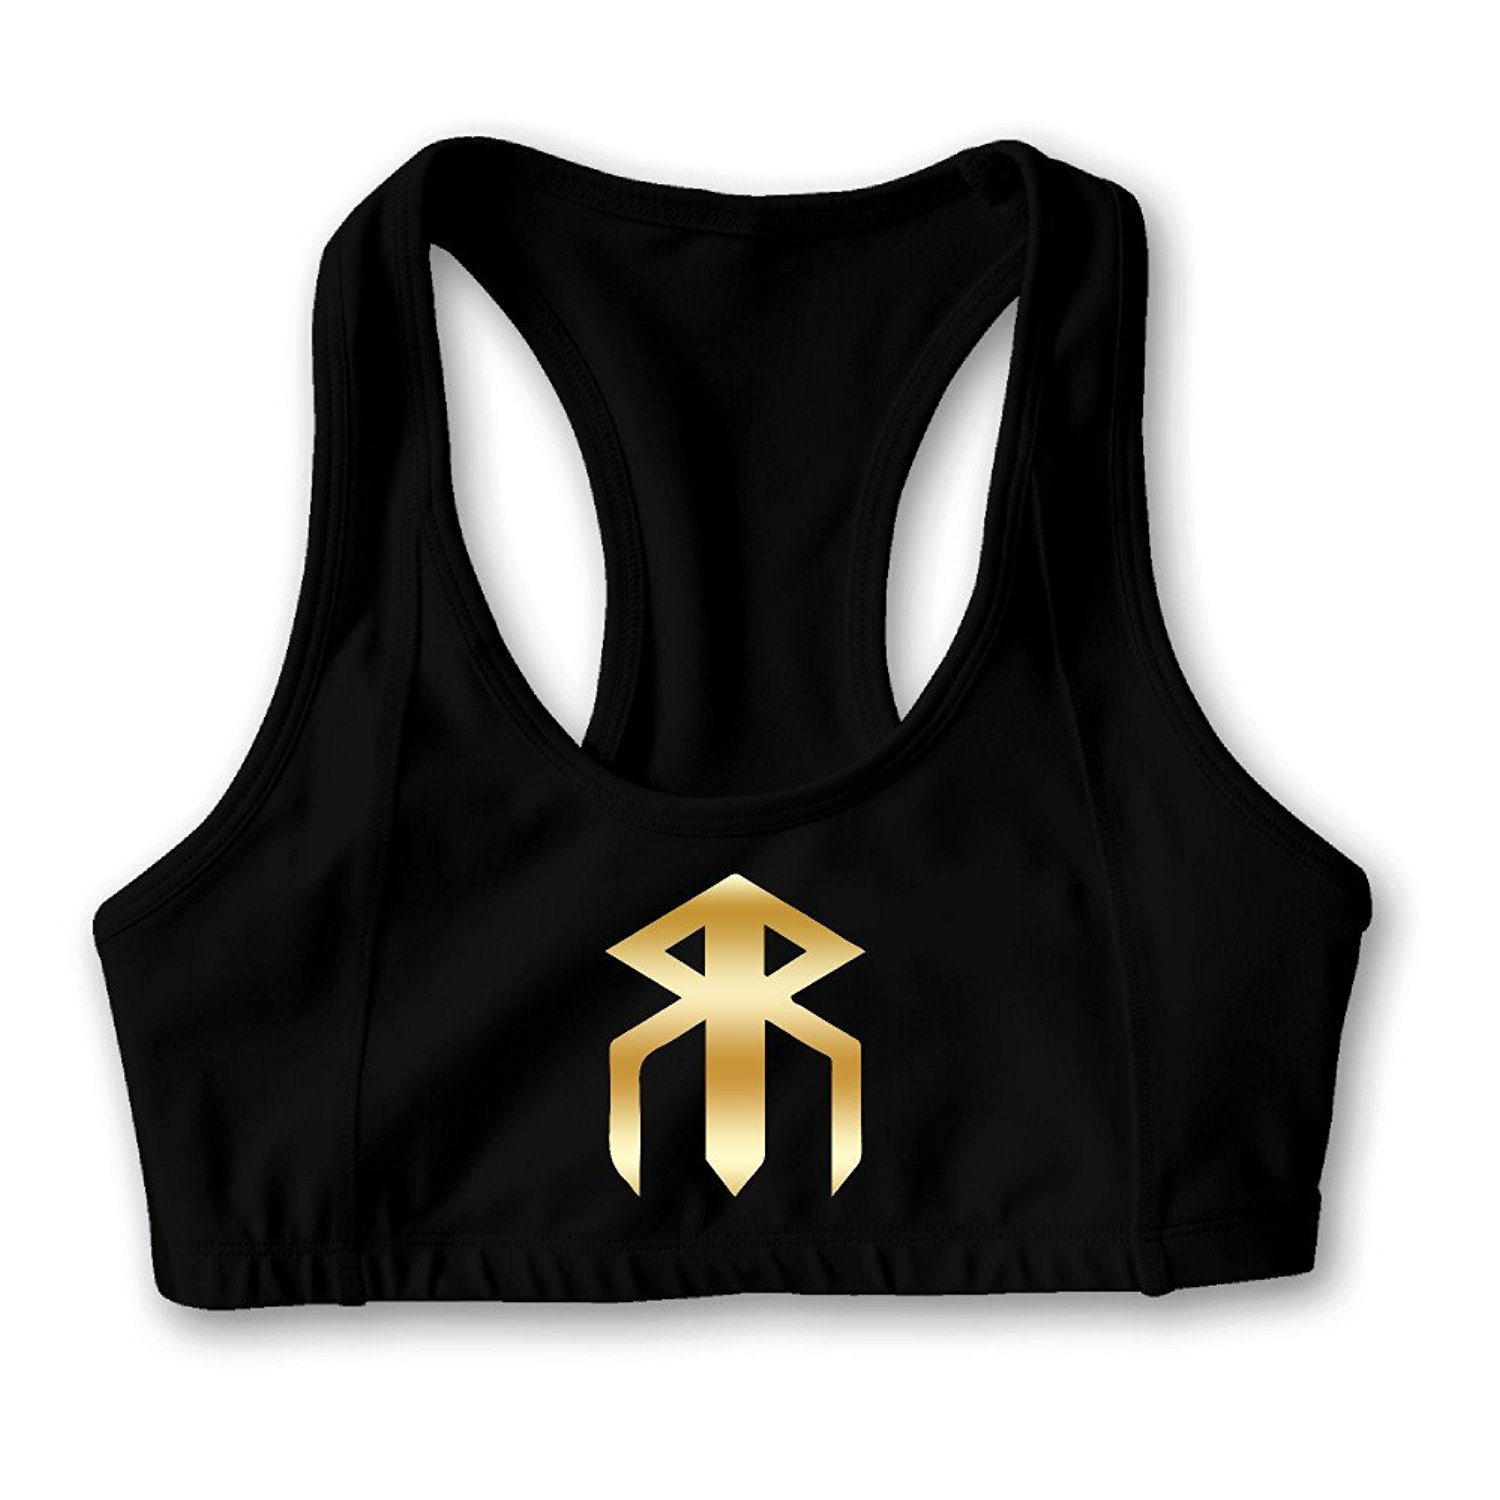 702dcf8b7a Get Quotations · UFC Champion Gold Logo Women s Oxjwn Yoga Sports Bra